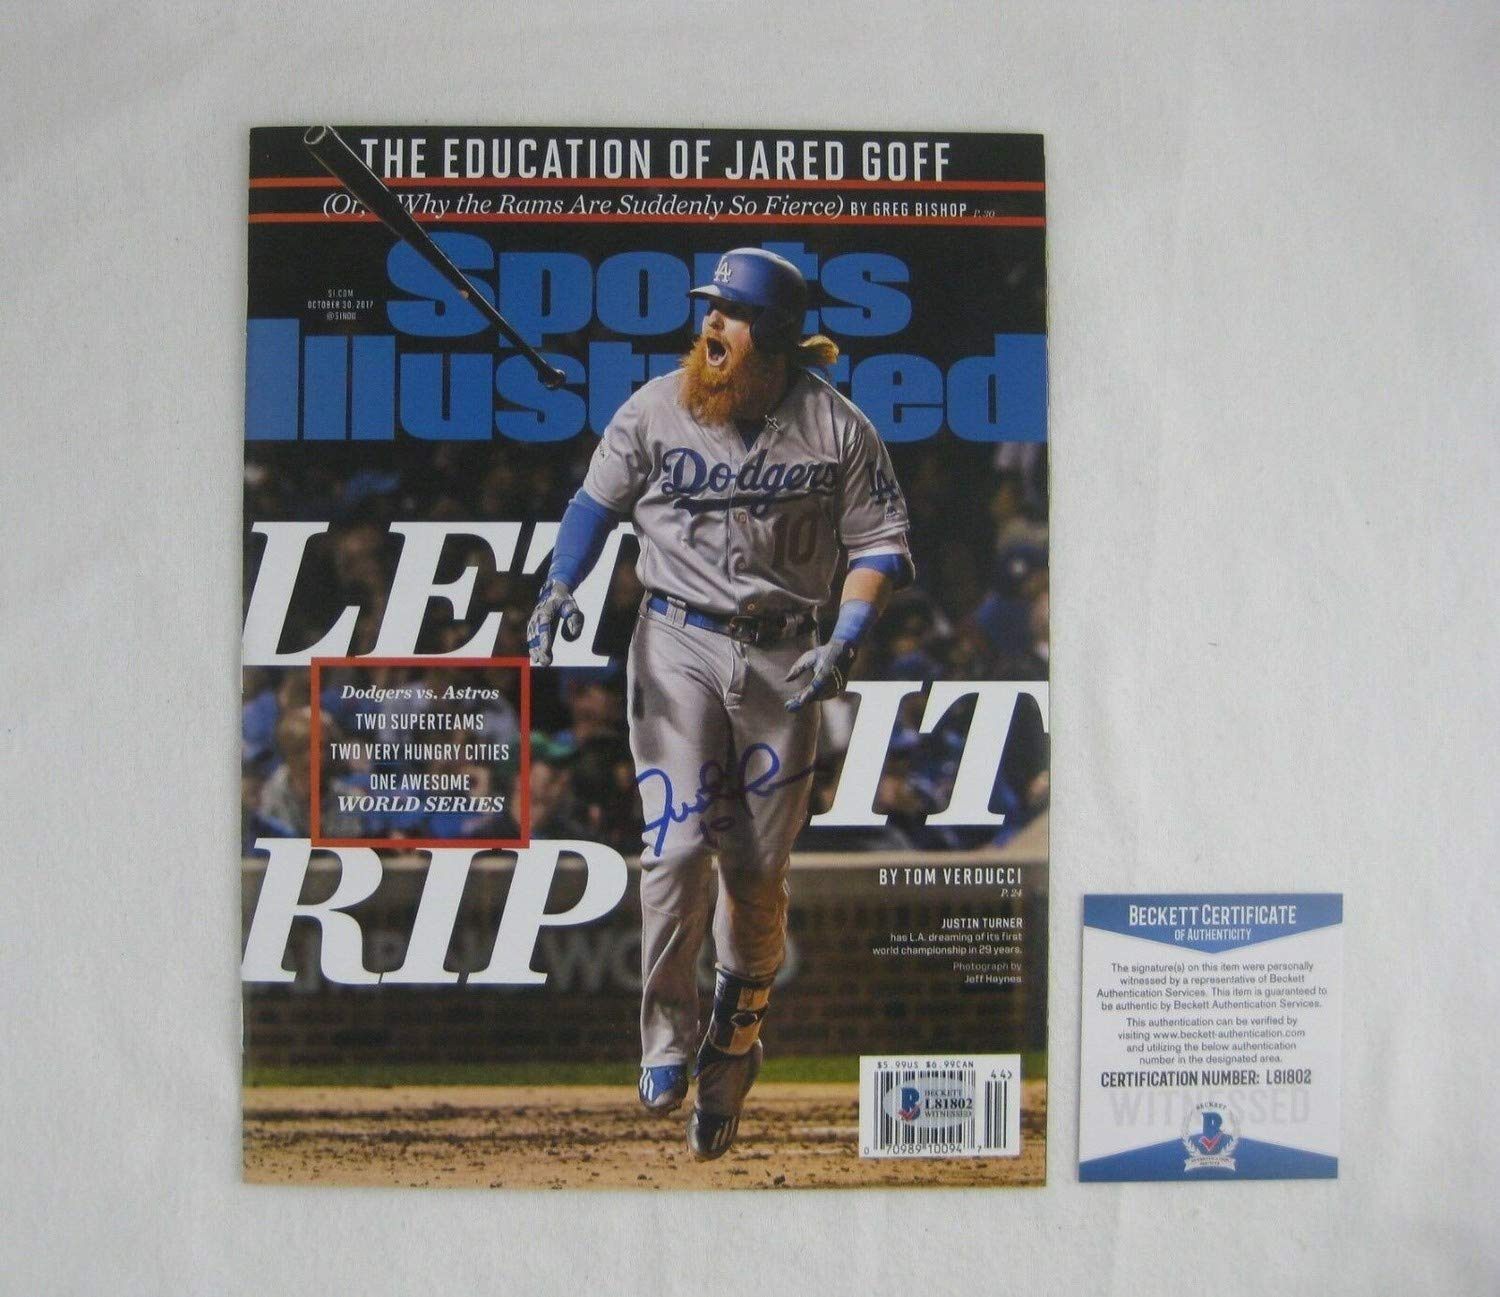 finest selection e418f acaf2 Justin Turner Autographed Signed Sports Illustrated Magazine ...